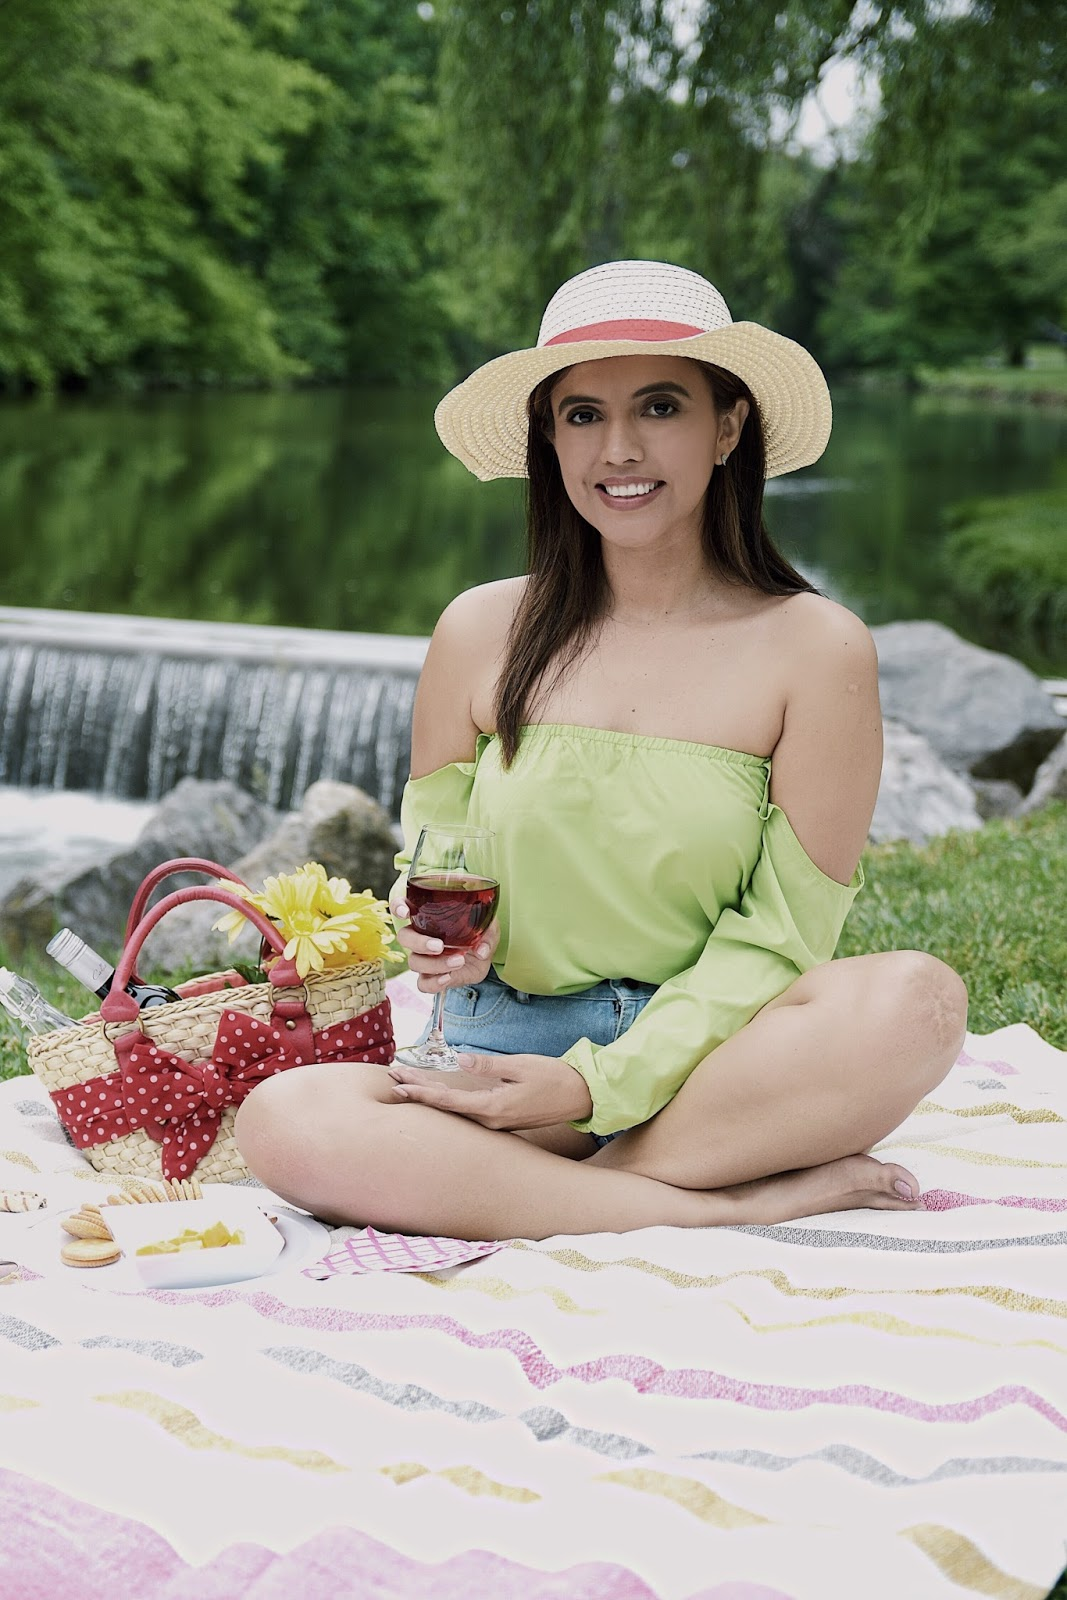 Picnic Day by Mari Estilo -Wearing: Shorts: SheIn  Top: SheIn Sandals: Charlotte Russe Blanket: west elm